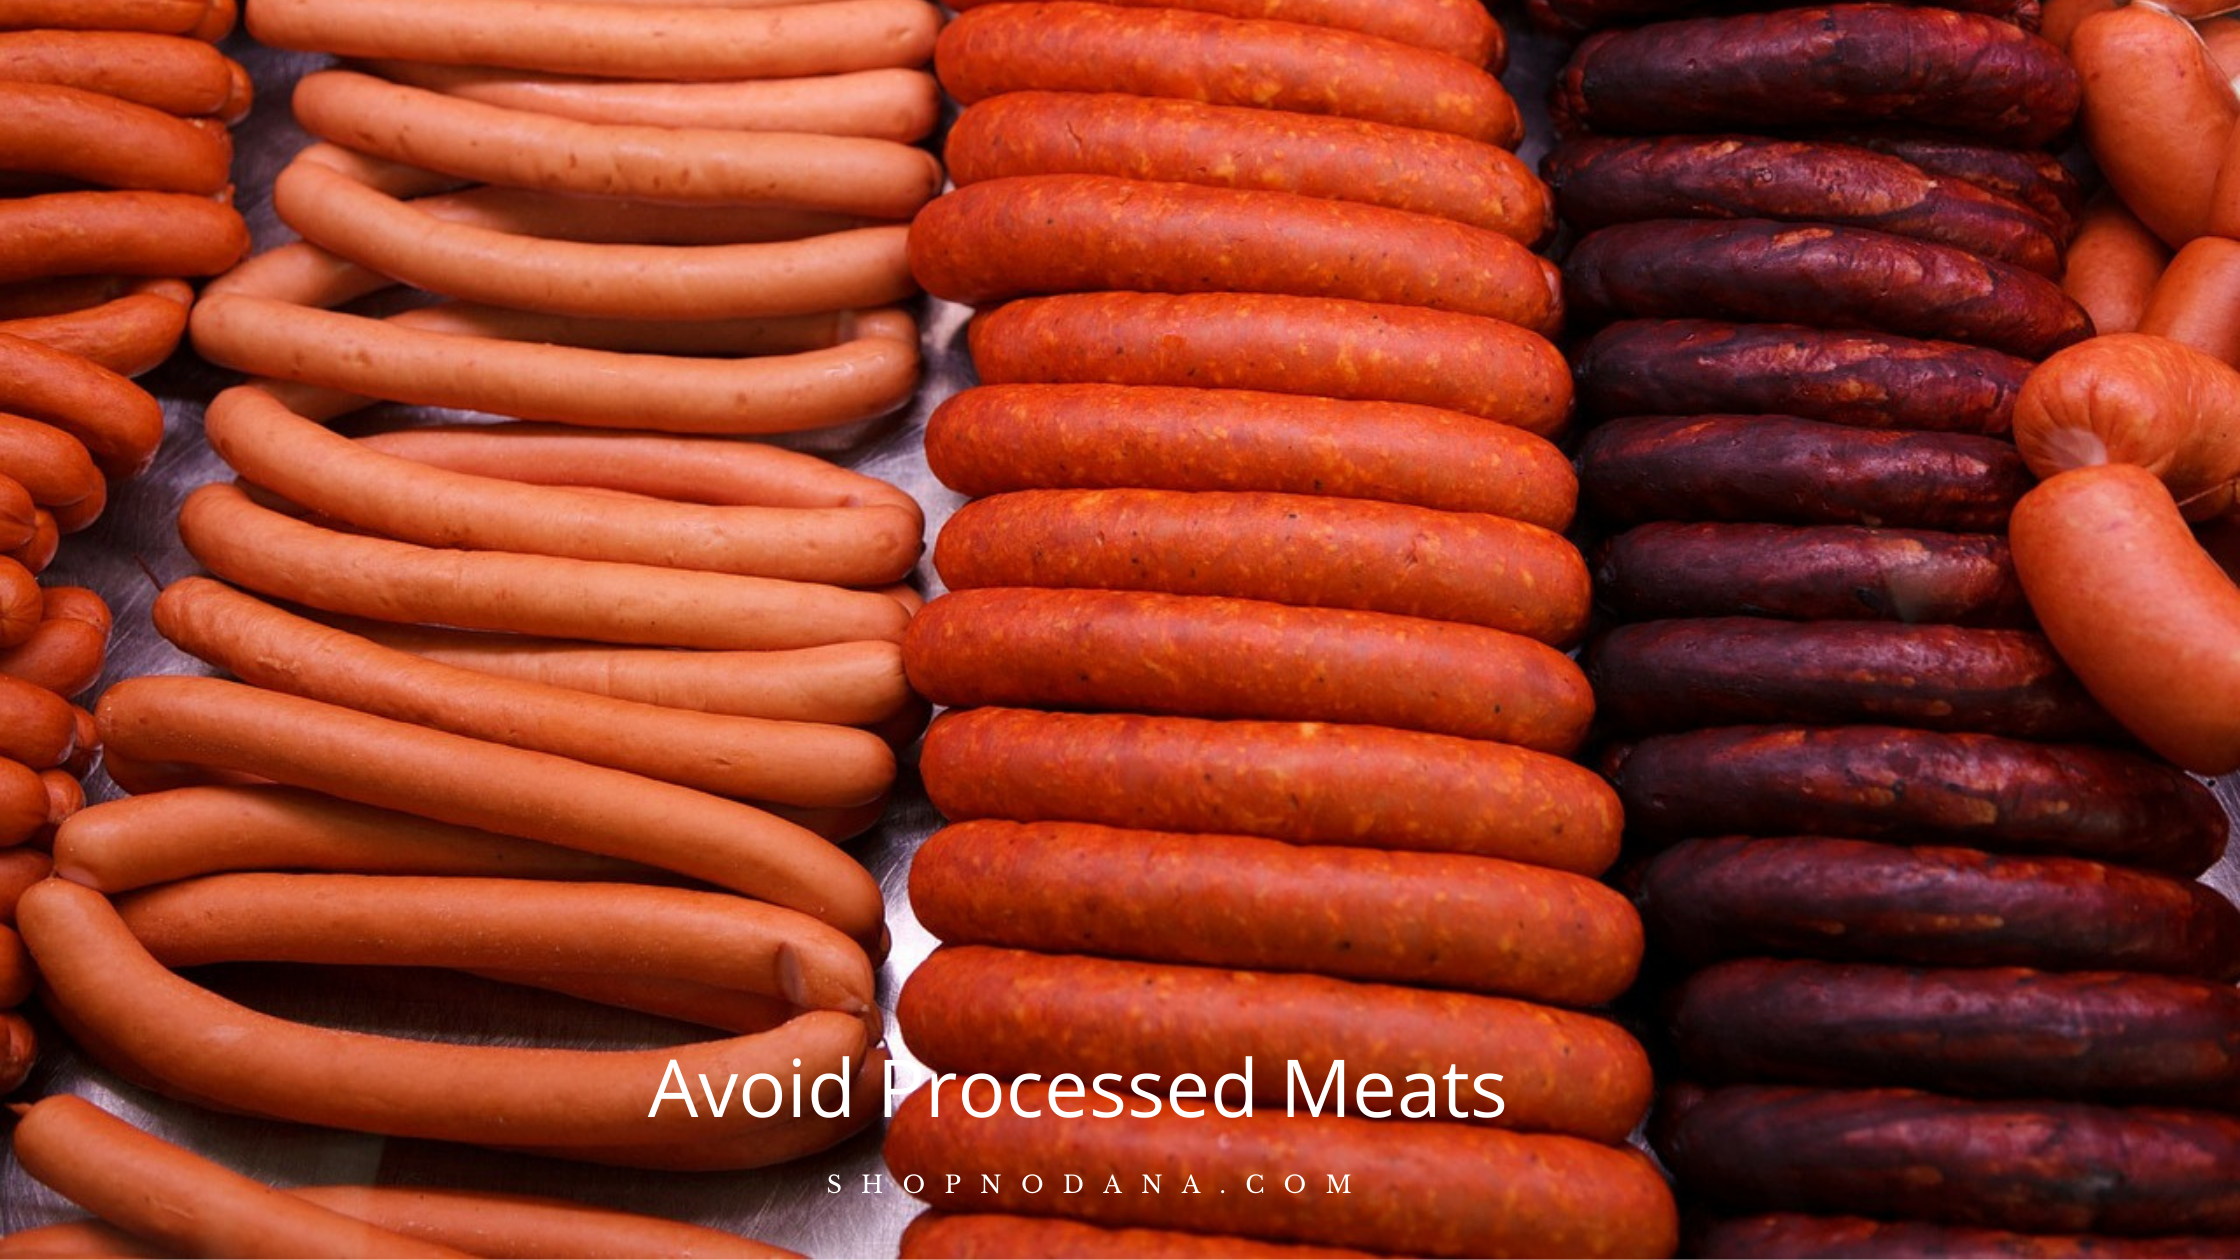 Avoid Processed Meats to lose lower belly fat